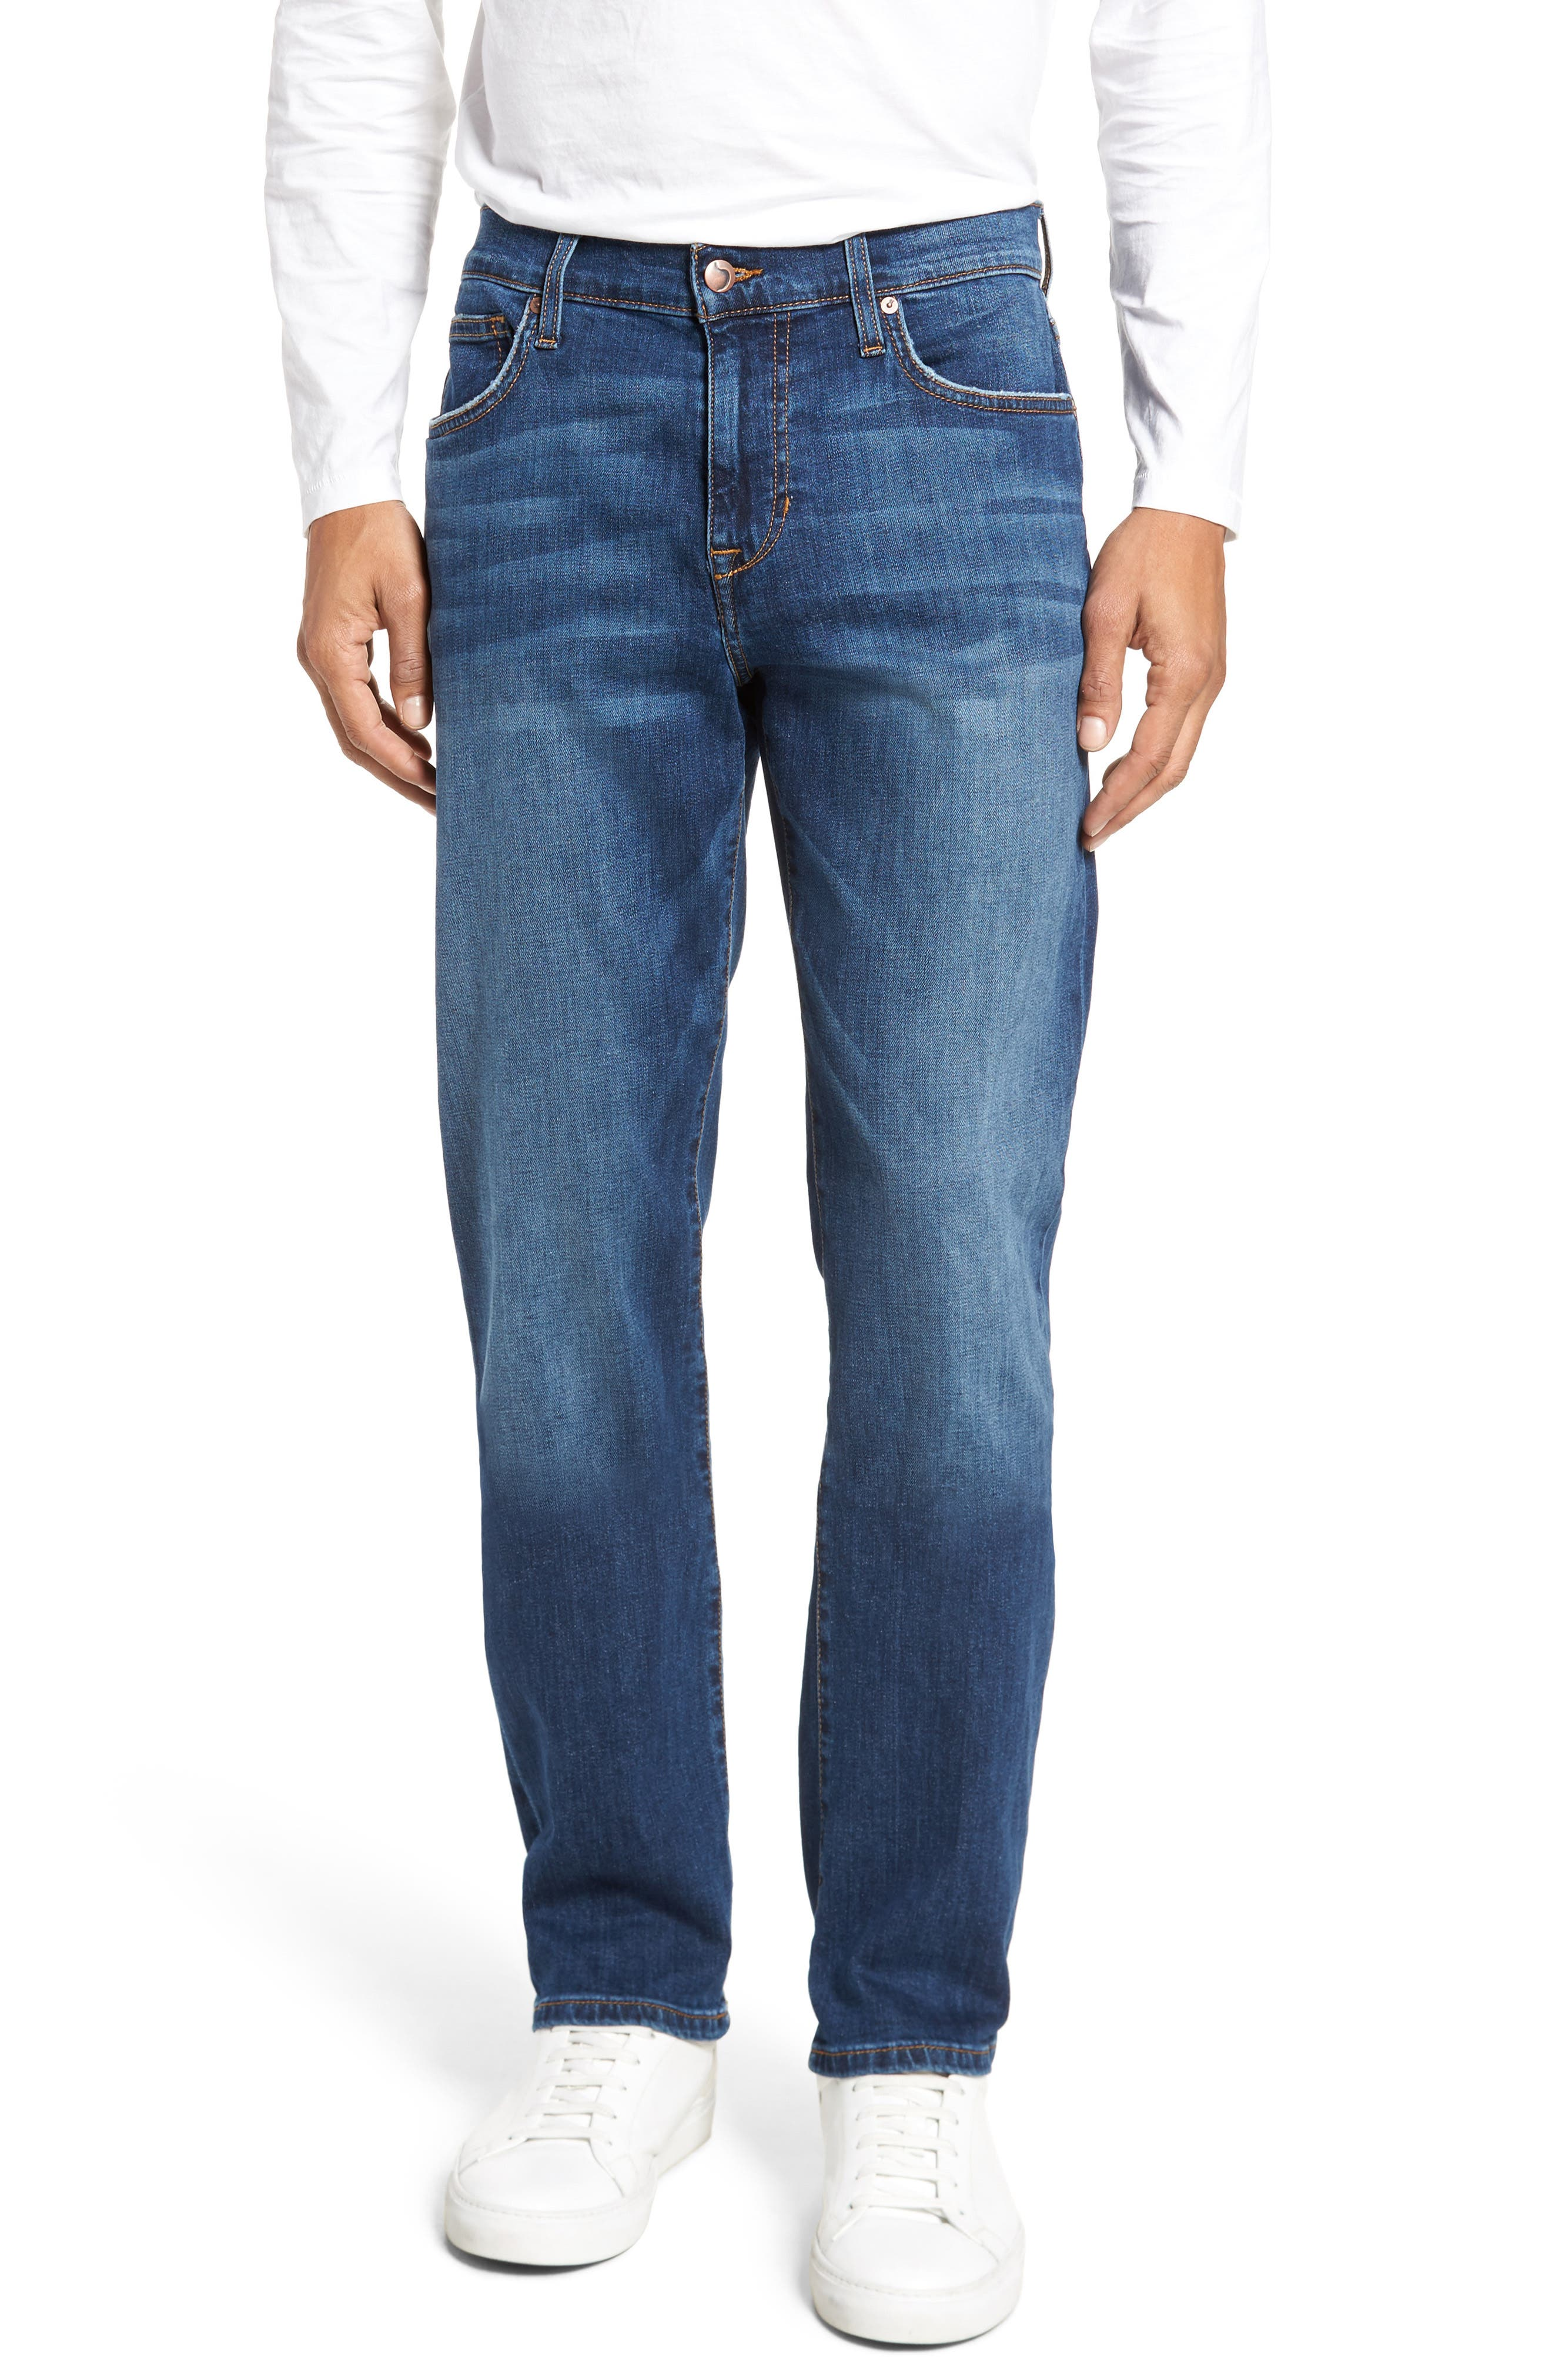 Brixton Slim Straight Fit Jeans,                             Main thumbnail 1, color,                             BRADLEE